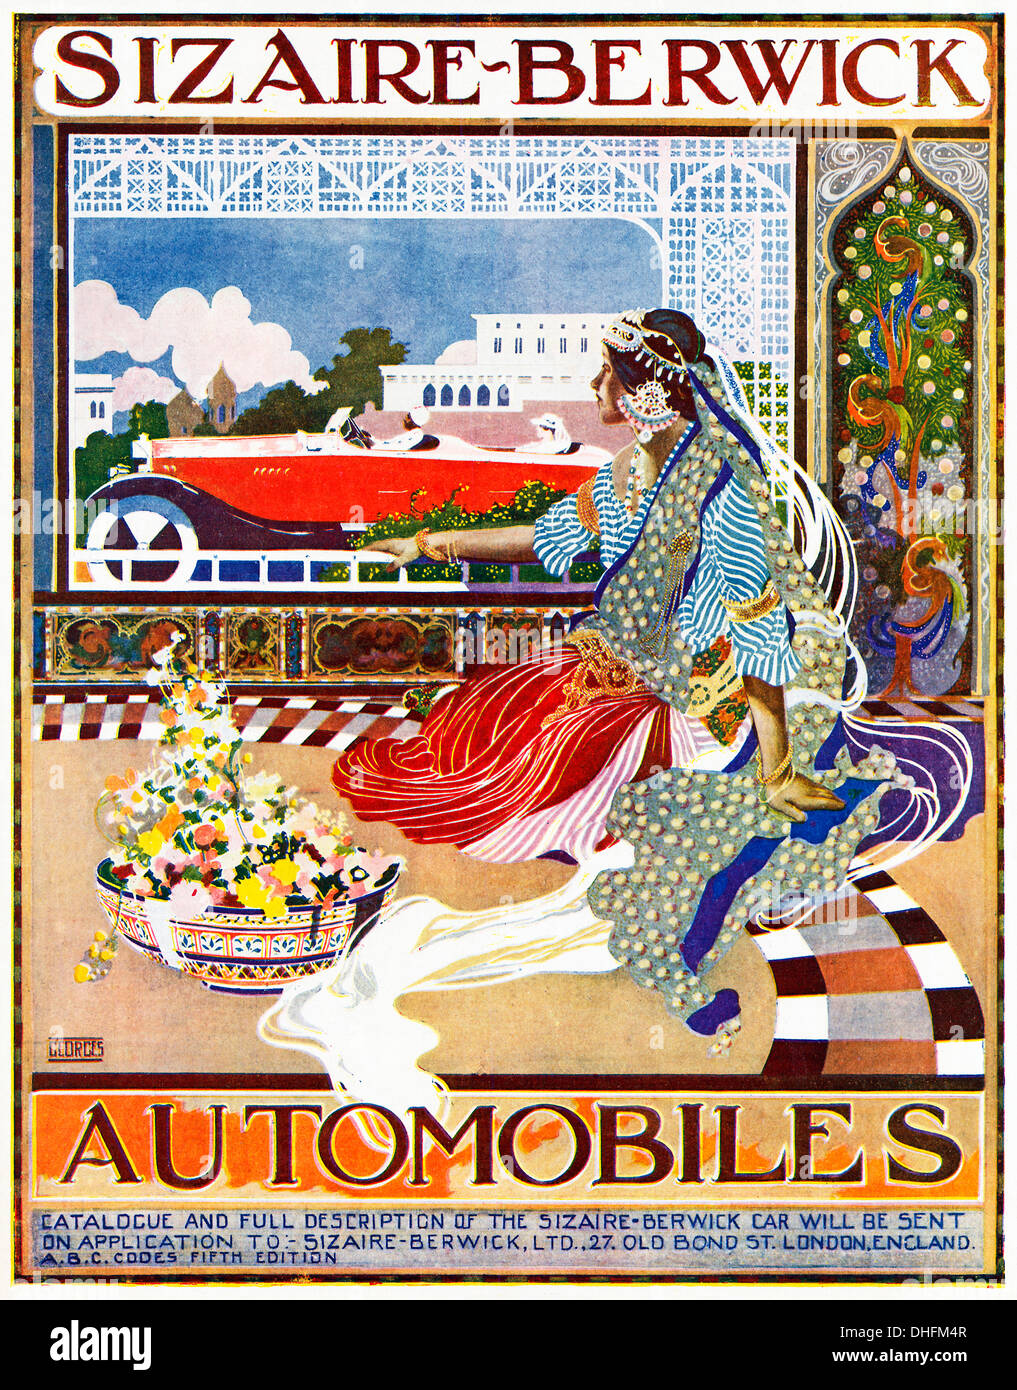 Sizaire Berwick Automobiles, 1919 ad for the British cars in an Indian magazine, a princess watches one drive past with the memsahib - Stock Image